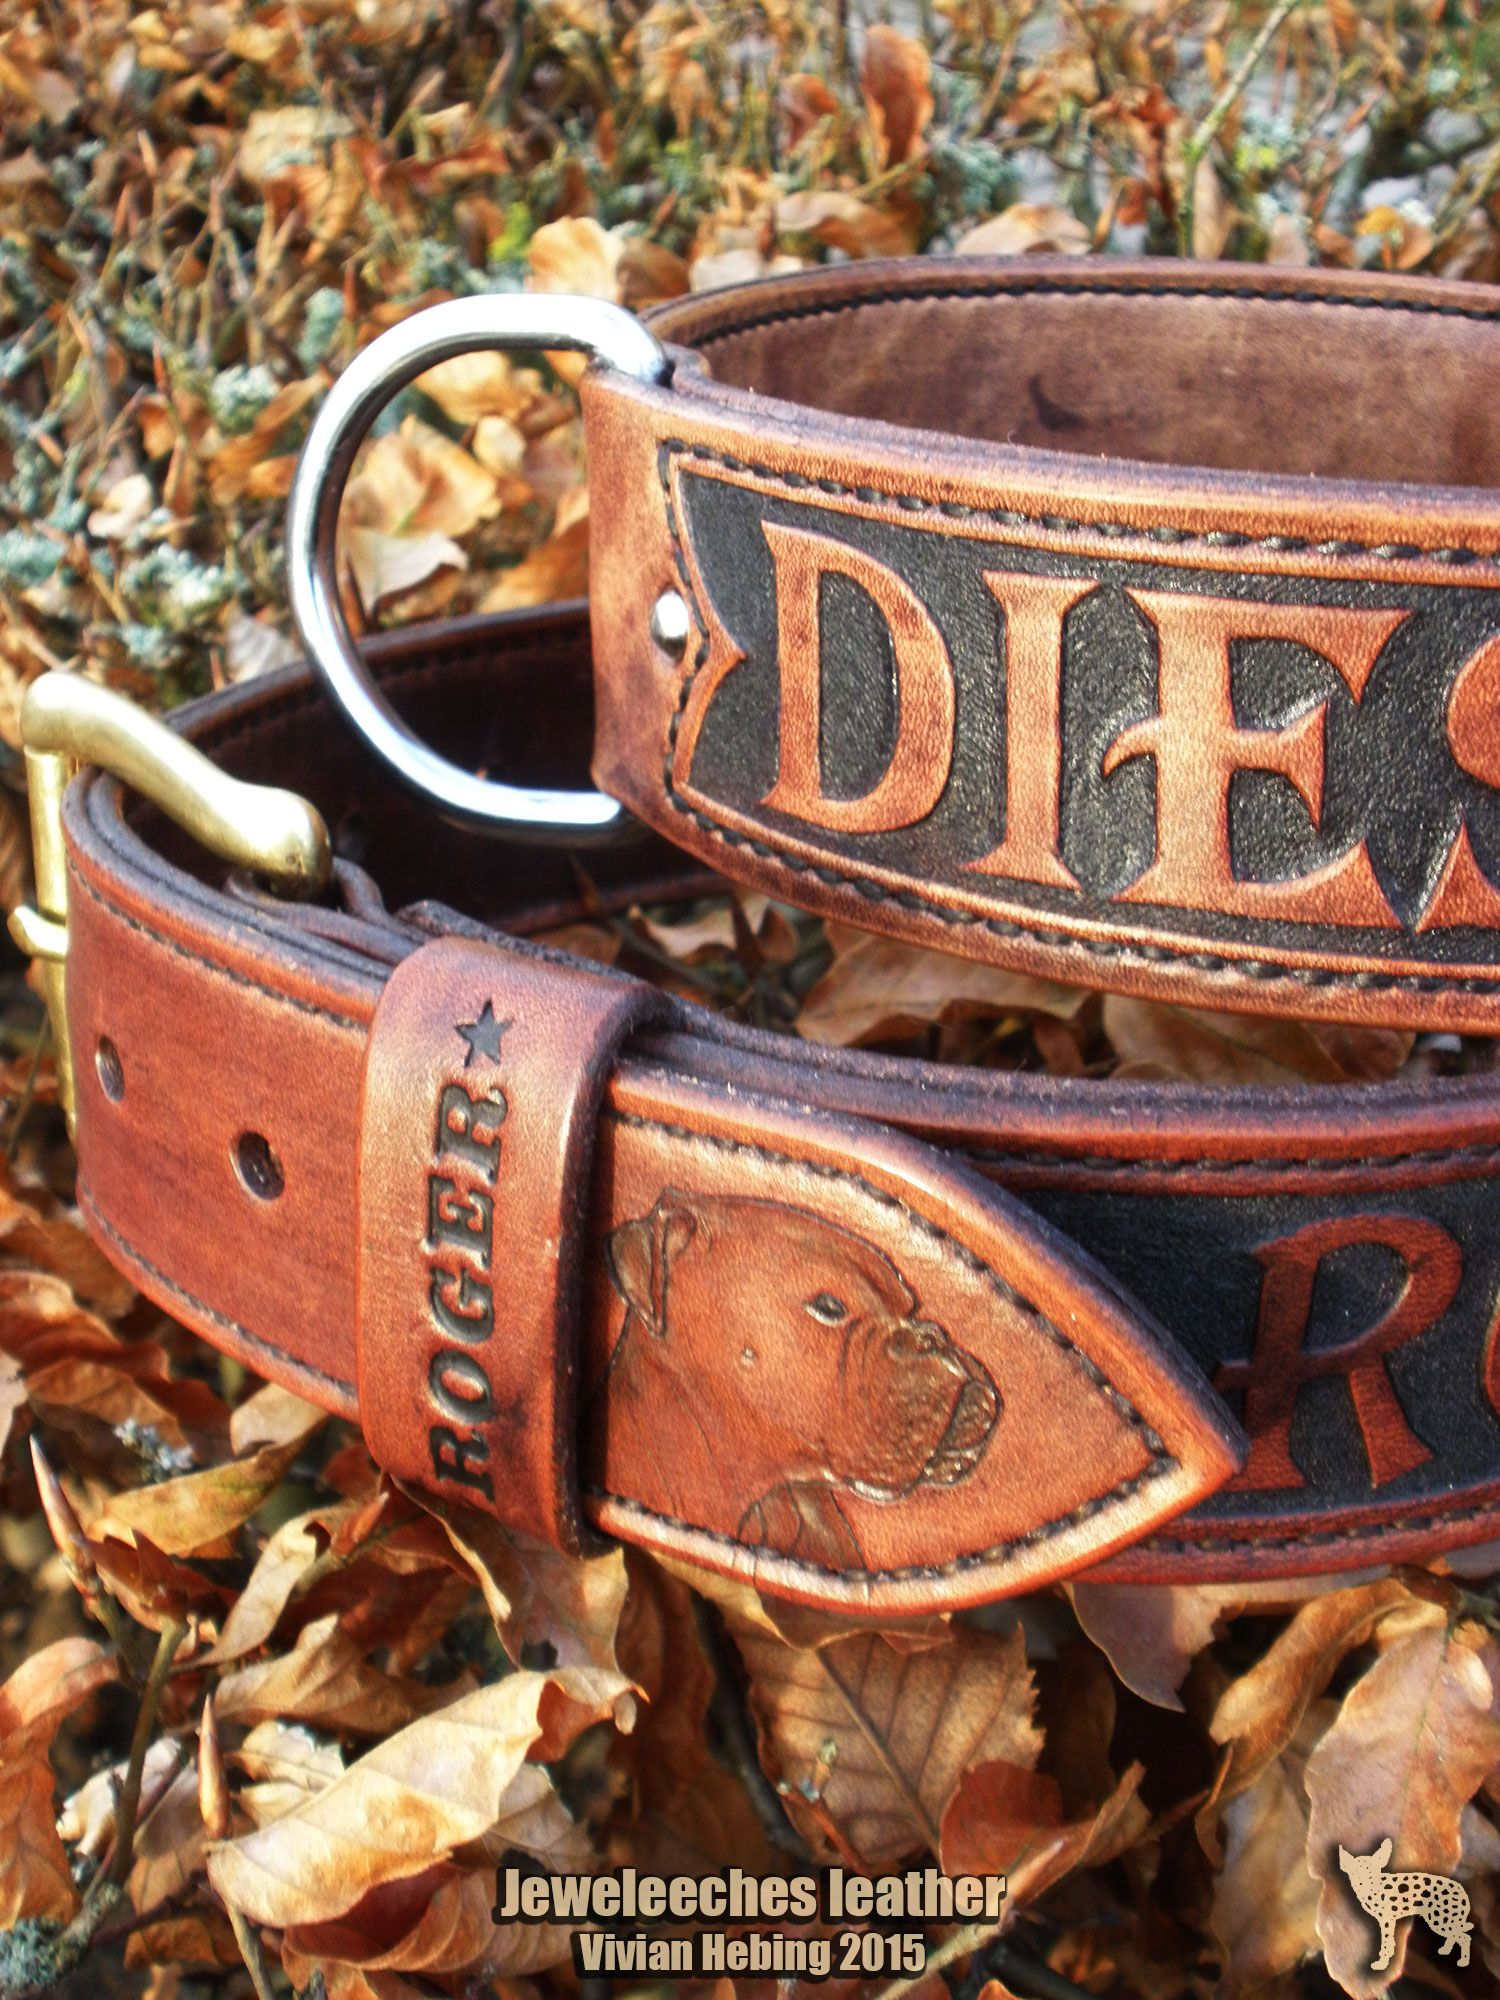 Handmade Dog Collars Of Natural Tanned Leather By Jeweleeches